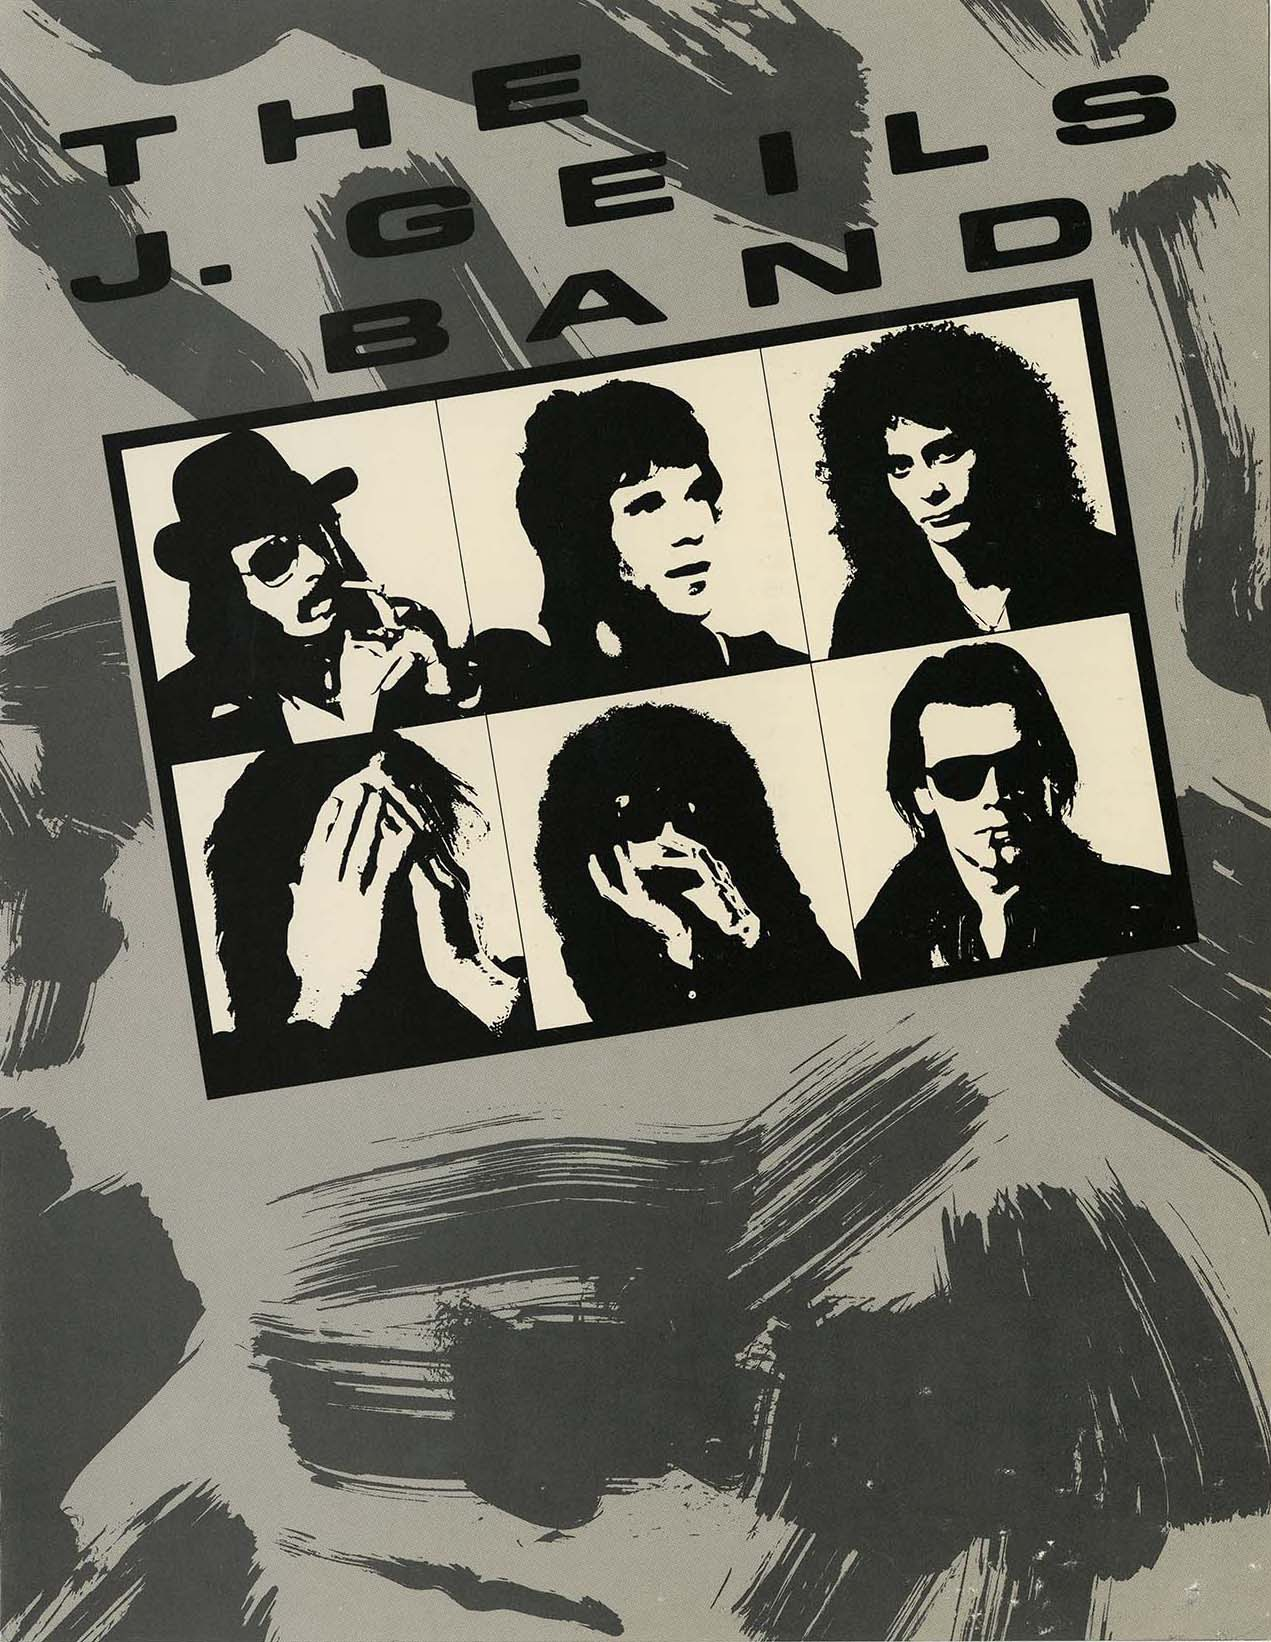 J. Geils Band program